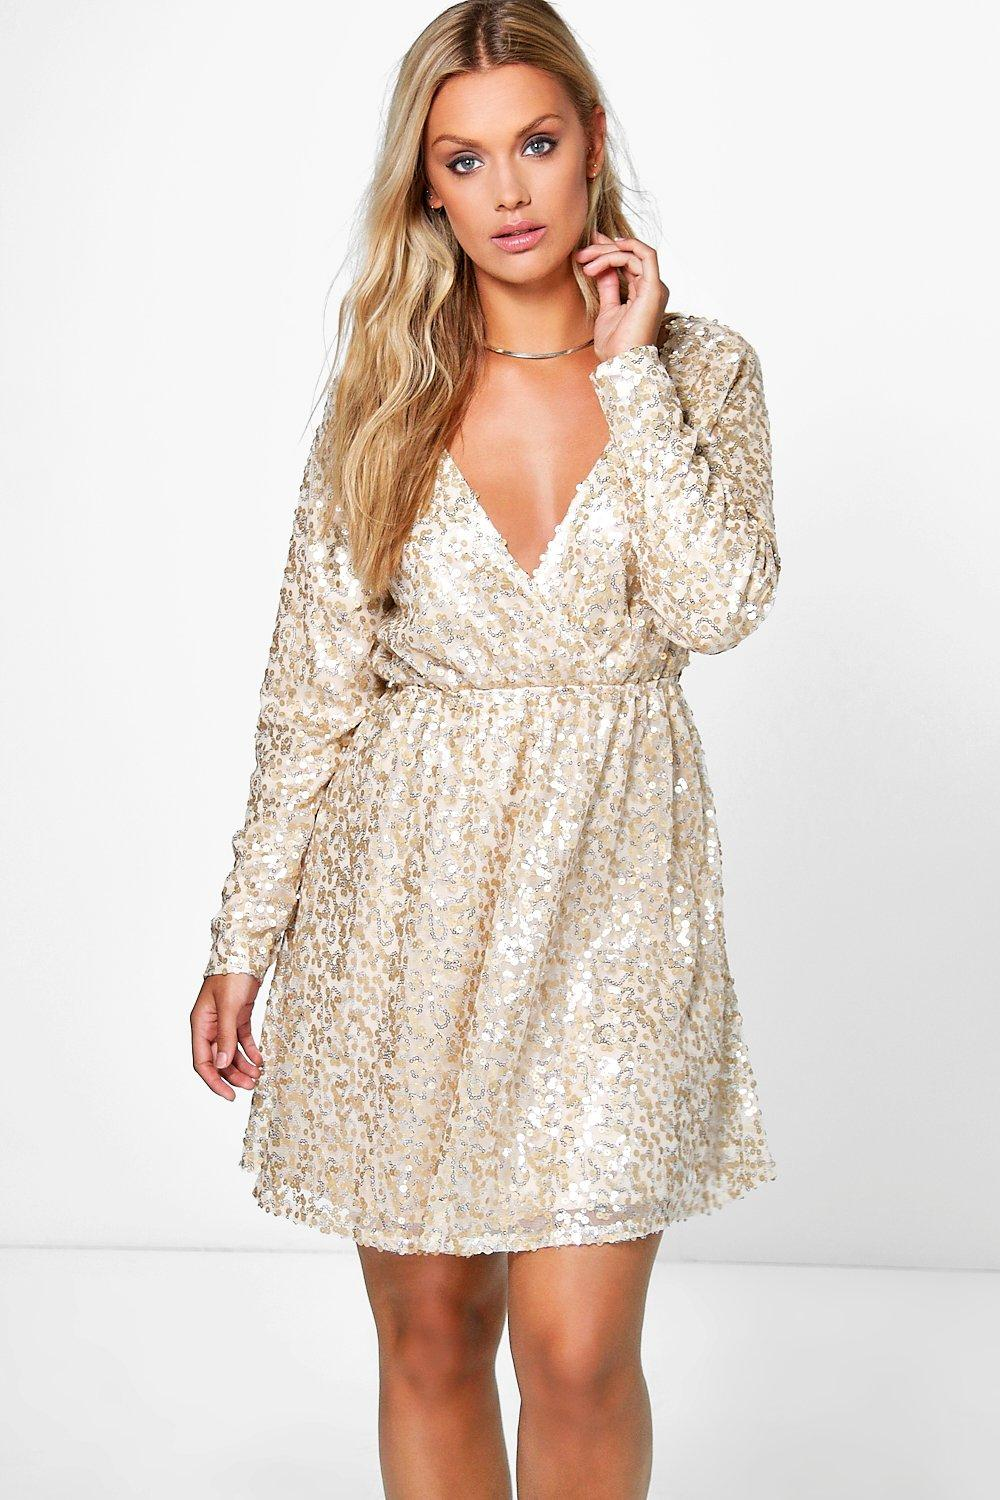 60s 70s Plus Size Dresses, Clothing, Costumes Womens Plus Sequin Kimono Sleeve Skater Dress - metallics - 16 $20.00 AT vintagedancer.com